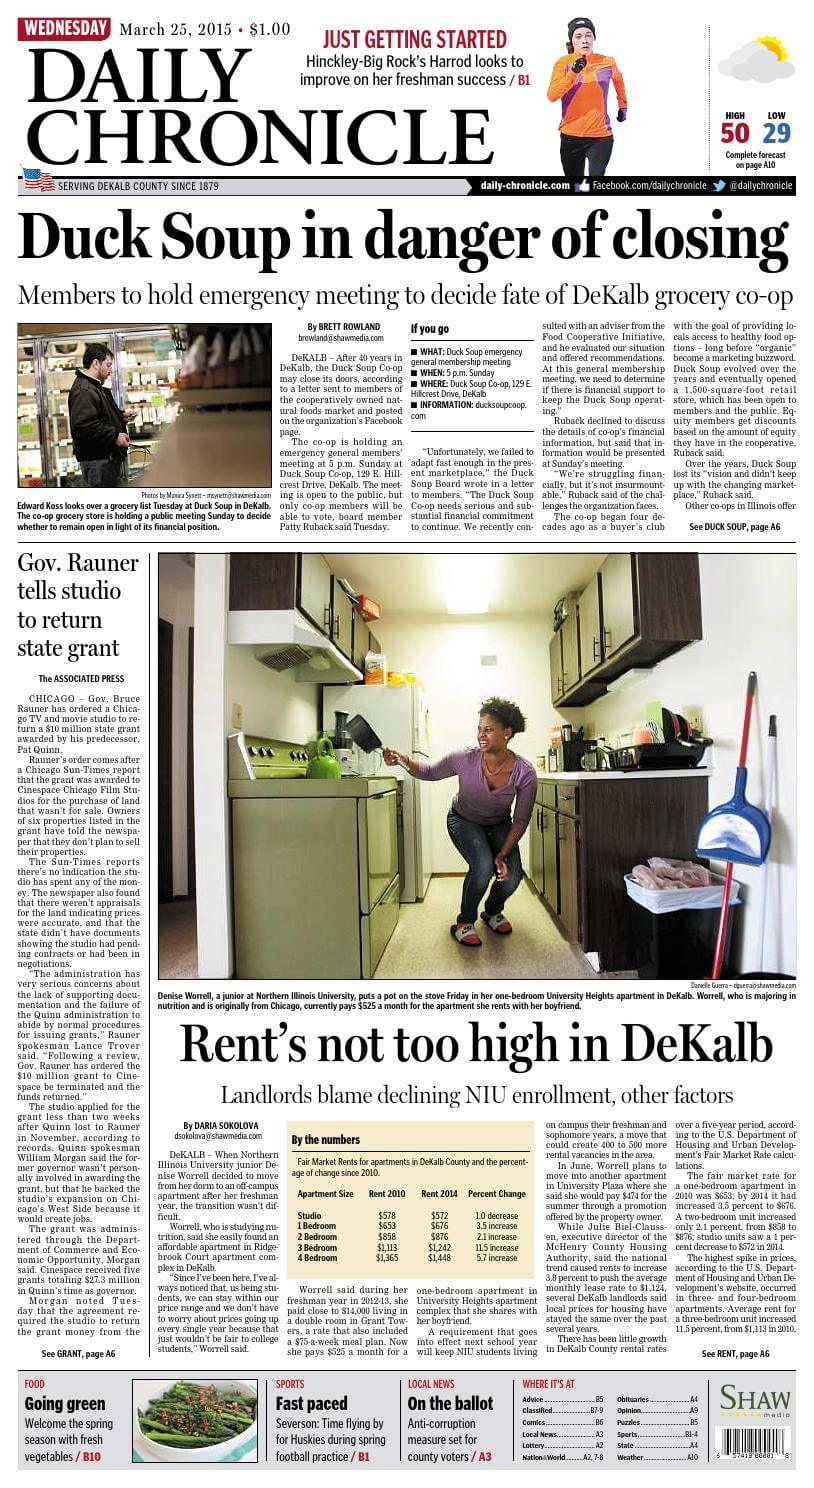 Illinois Newspapers 17 Daily Chronicle